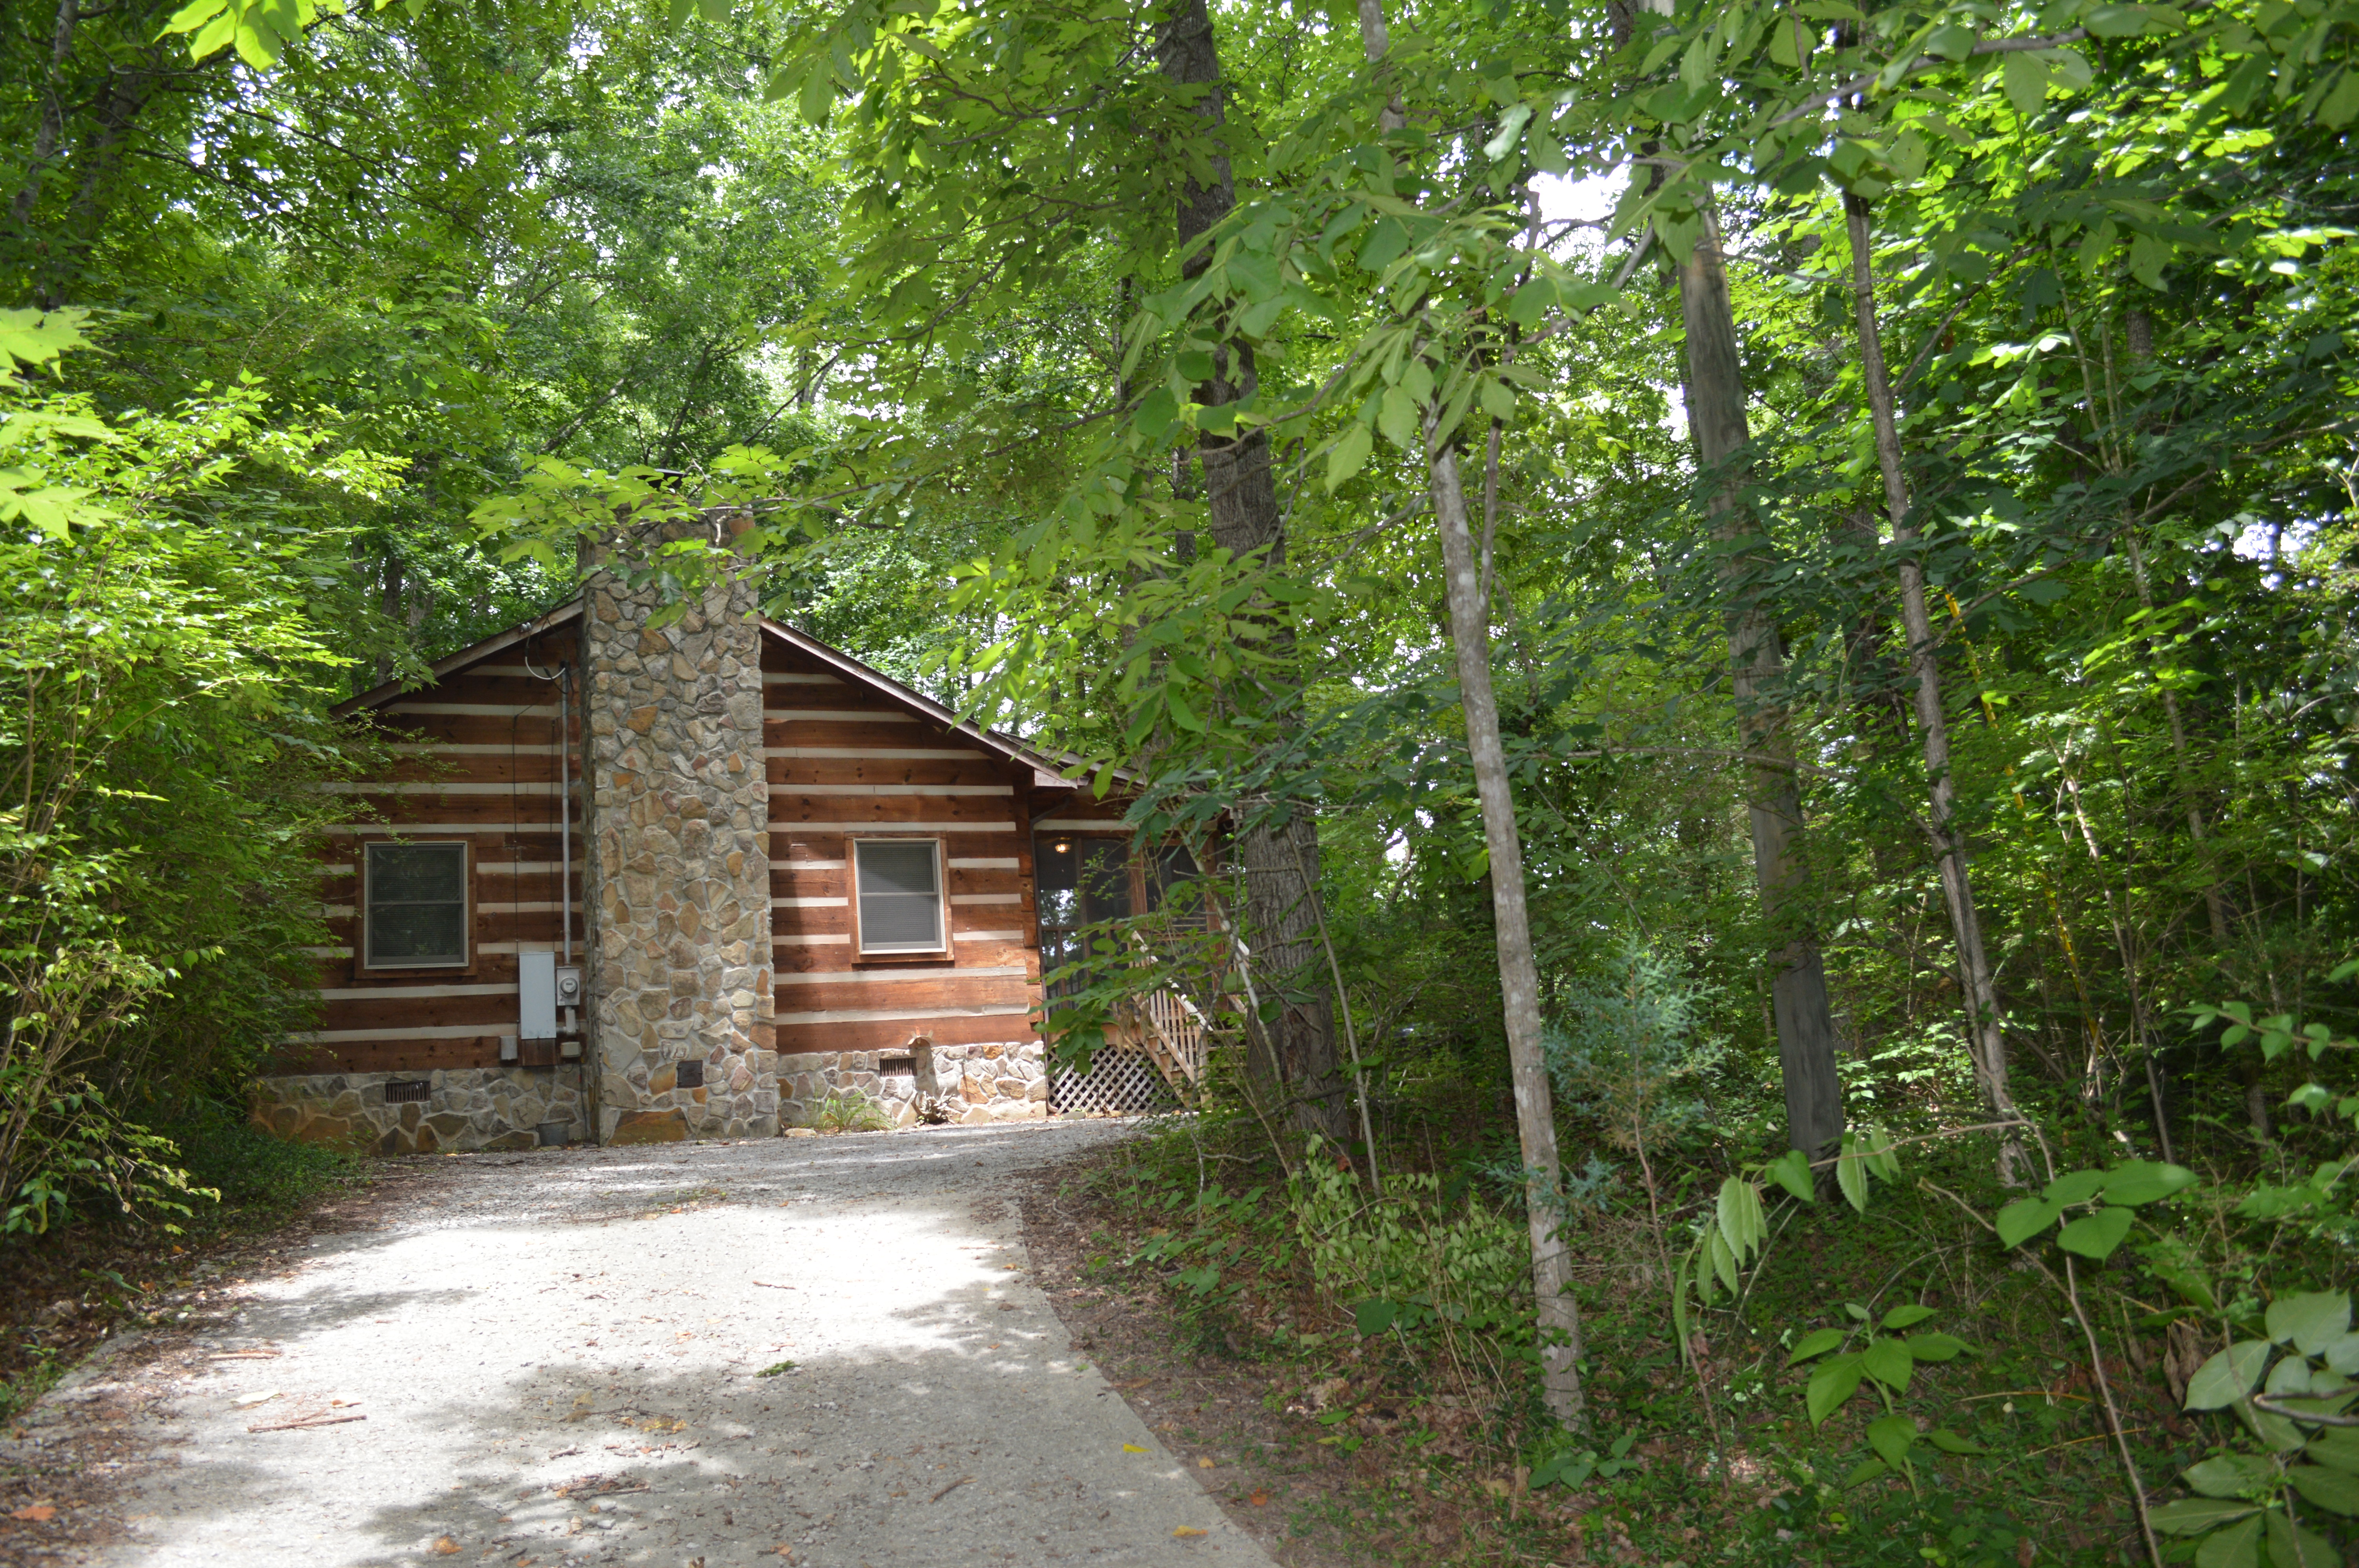 Wonderful image of Townsend Log Cabin near River Tipton's Cabin Rentals with #7B9C2F color and 6016x4000 pixels